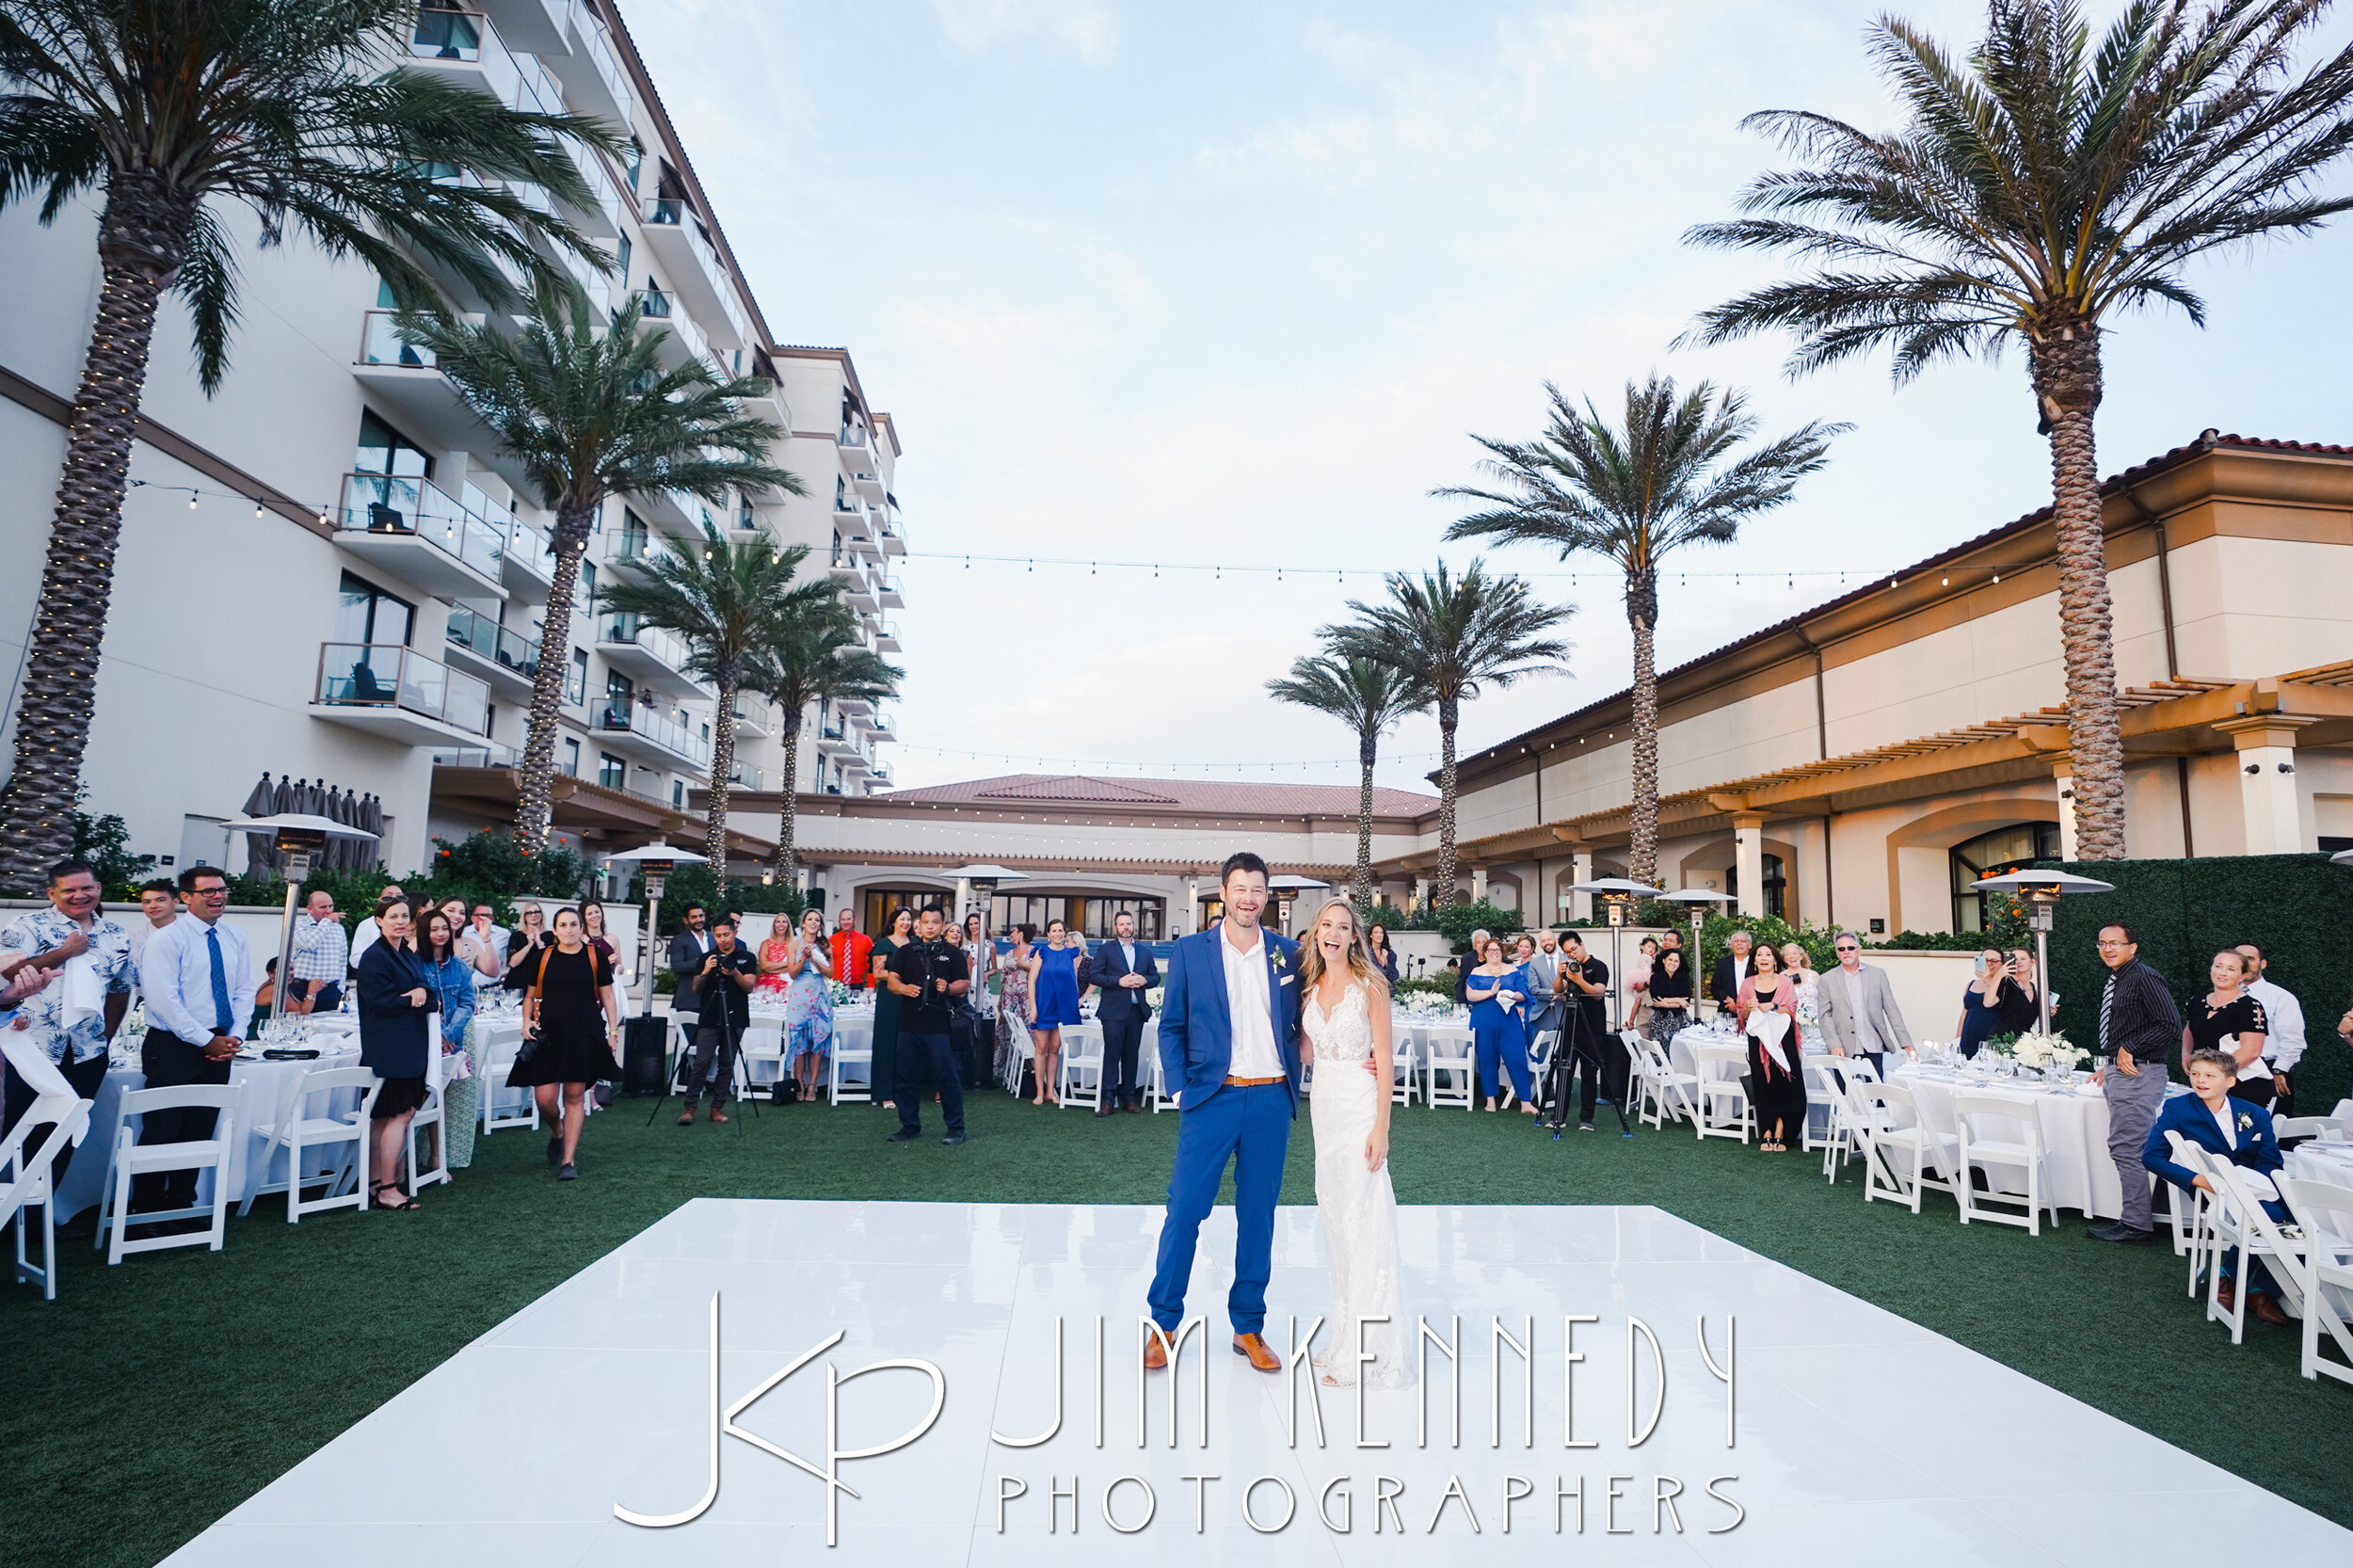 waterfront-hilton-wedding-jim-kennedy-photographers_0174.JPG